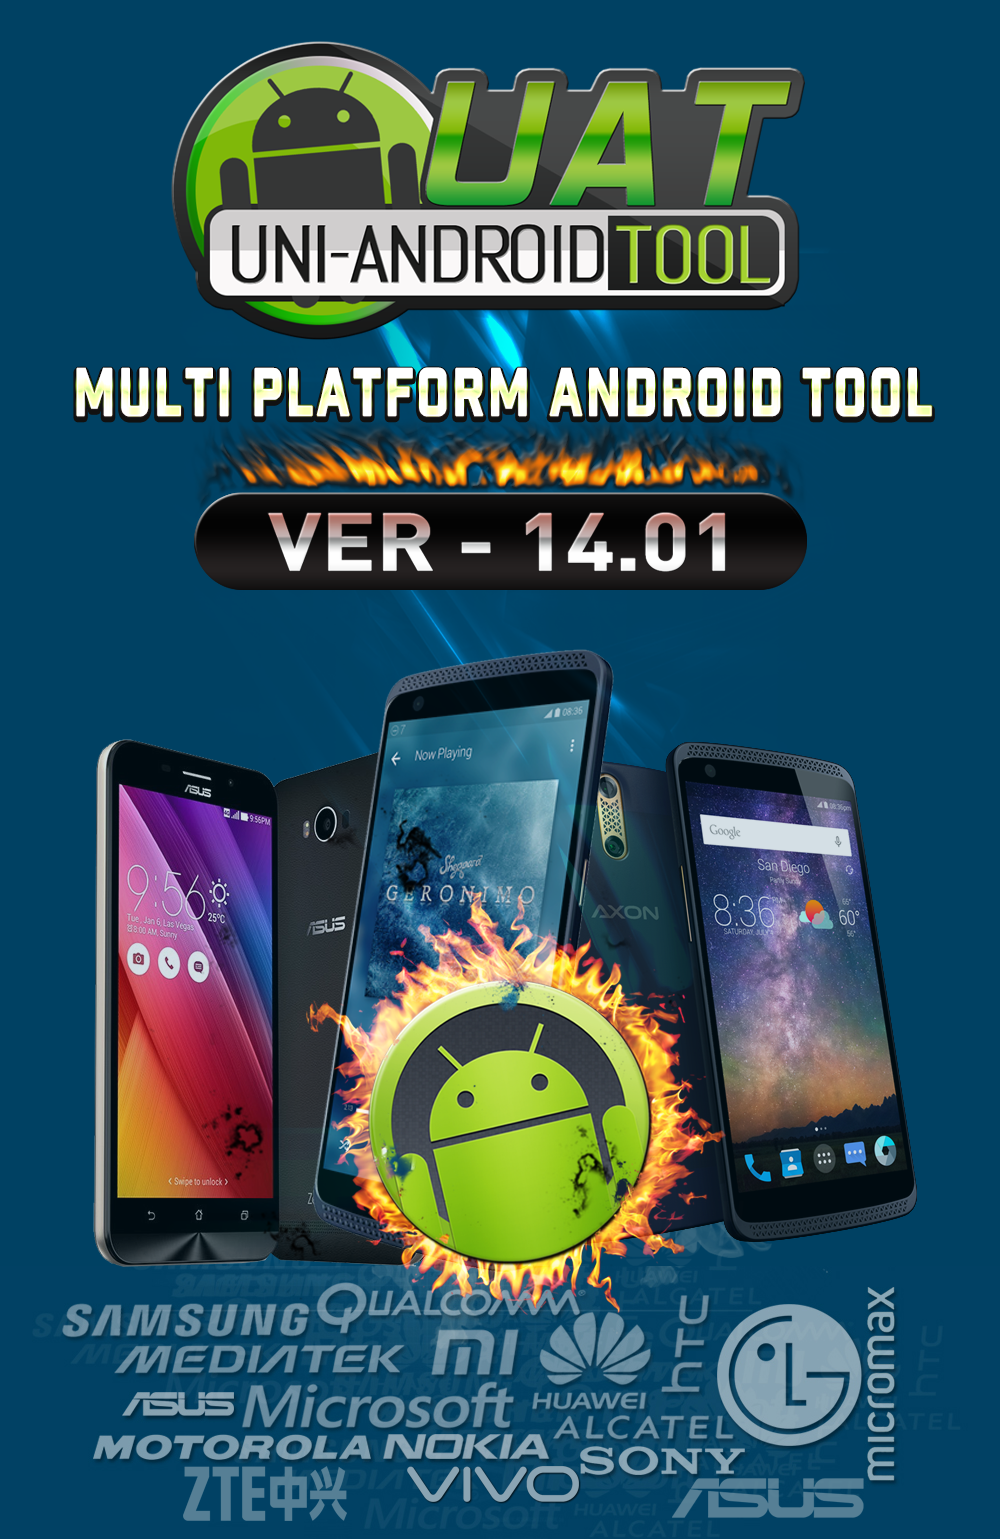 Uni-Android Tool [UAT] Version 14.01 Released [25/1/2018]